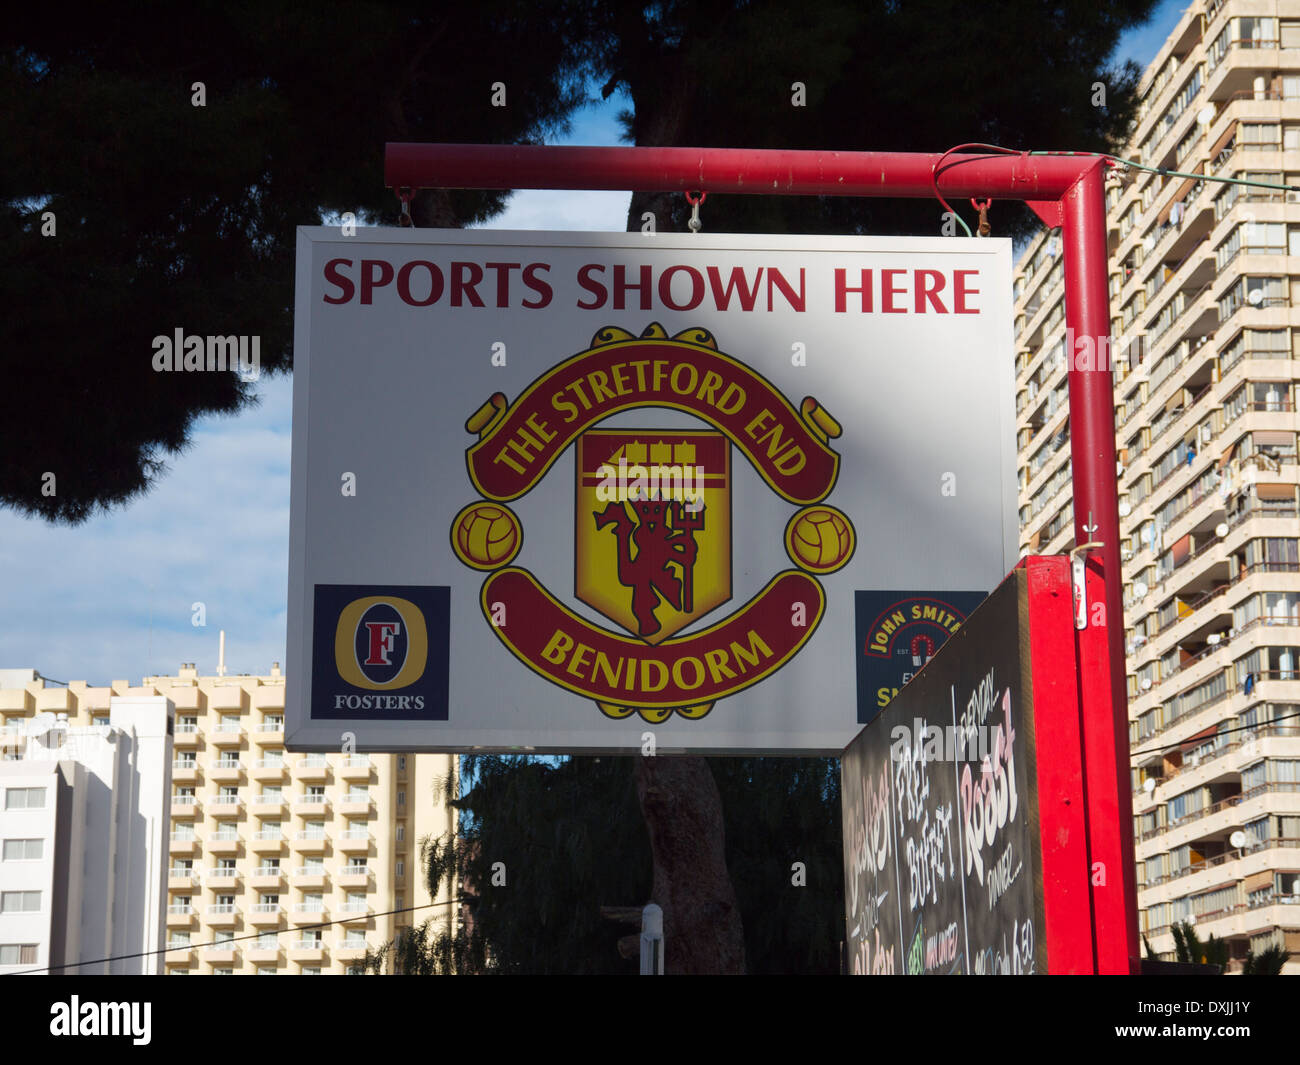 The Stretford End sports bar in Benidorm, Spain using the Manchester United football logo design. - Stock Image